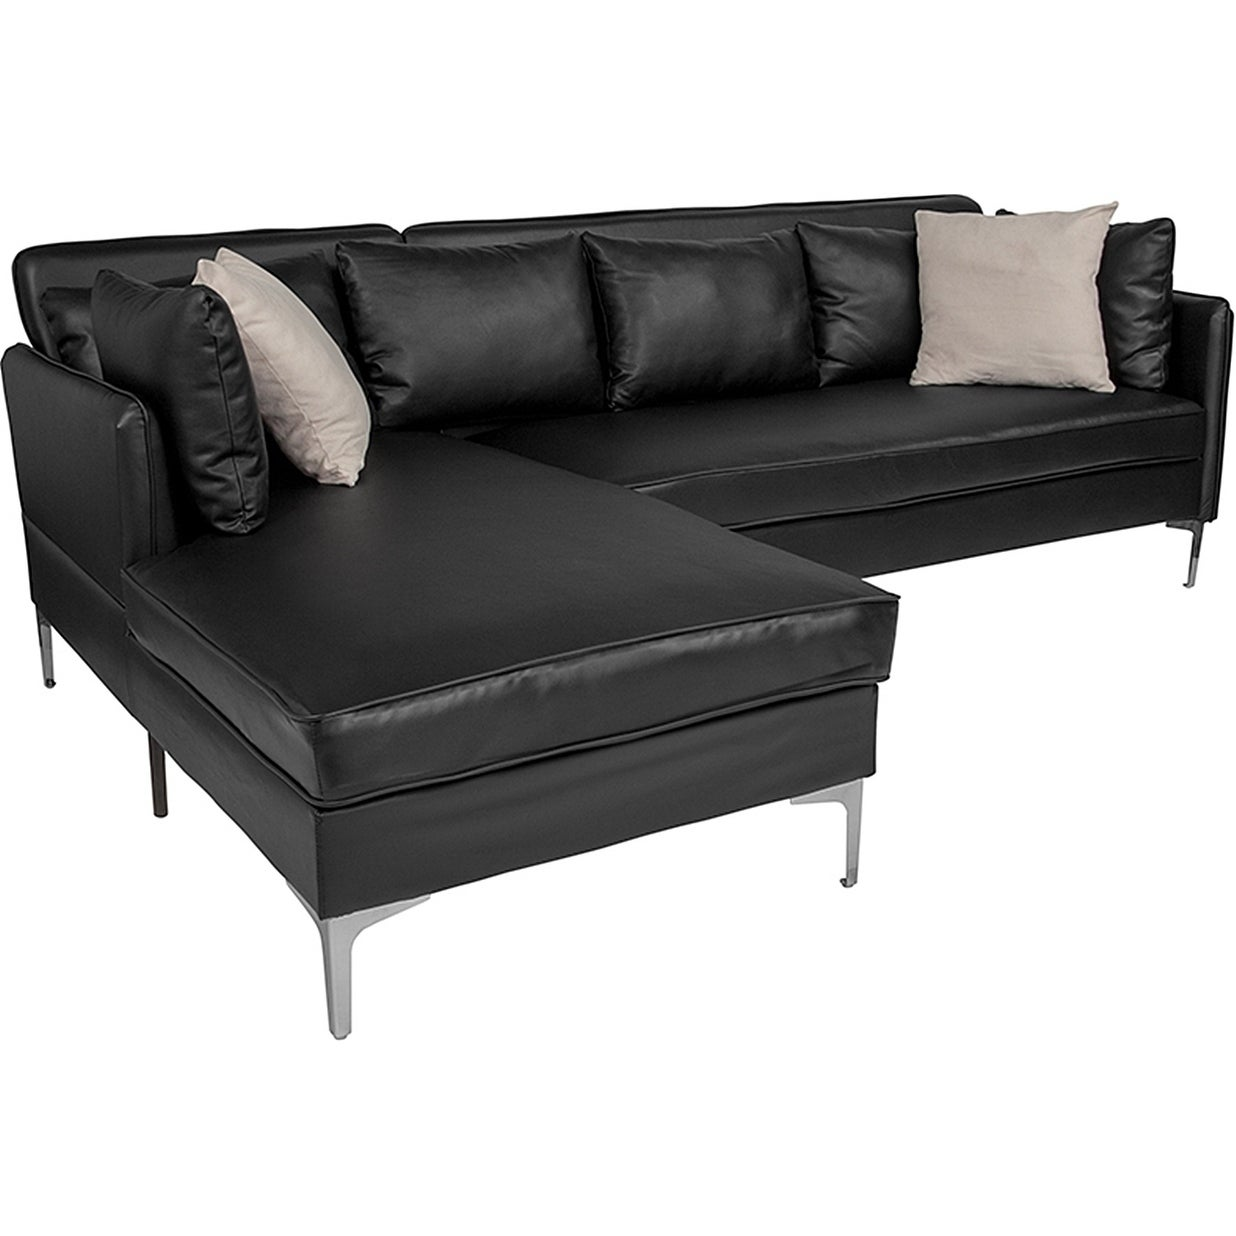 Hempstead Modern Black Leather Sectional Sofa with Left Facing Chaise